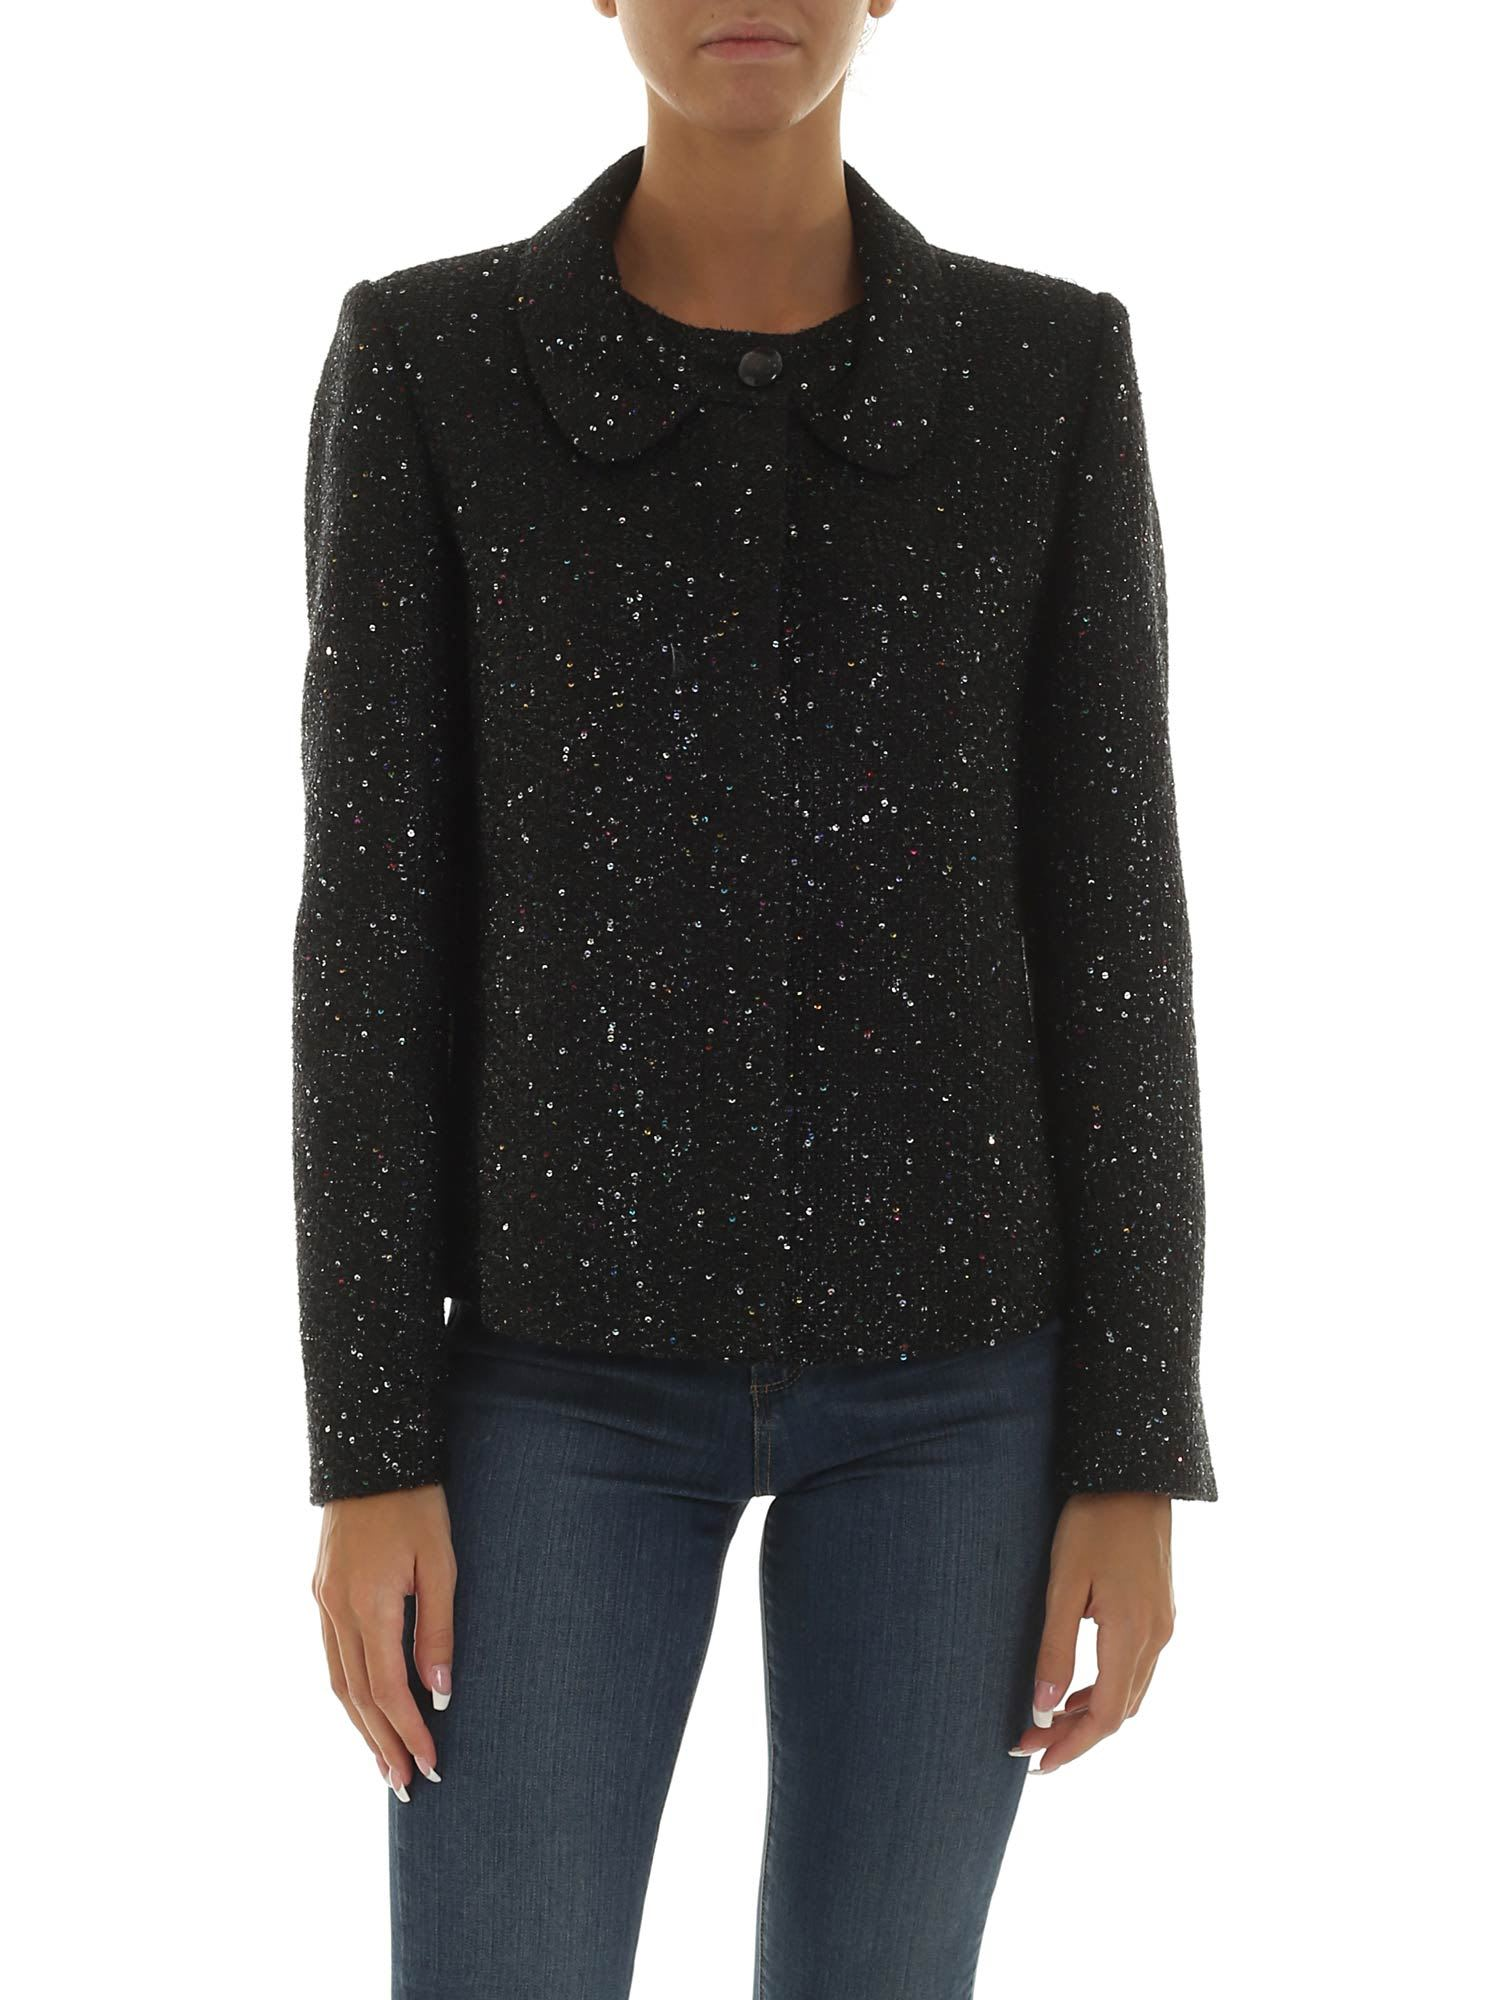 Emporio Armani Sequin Embellished Jacket